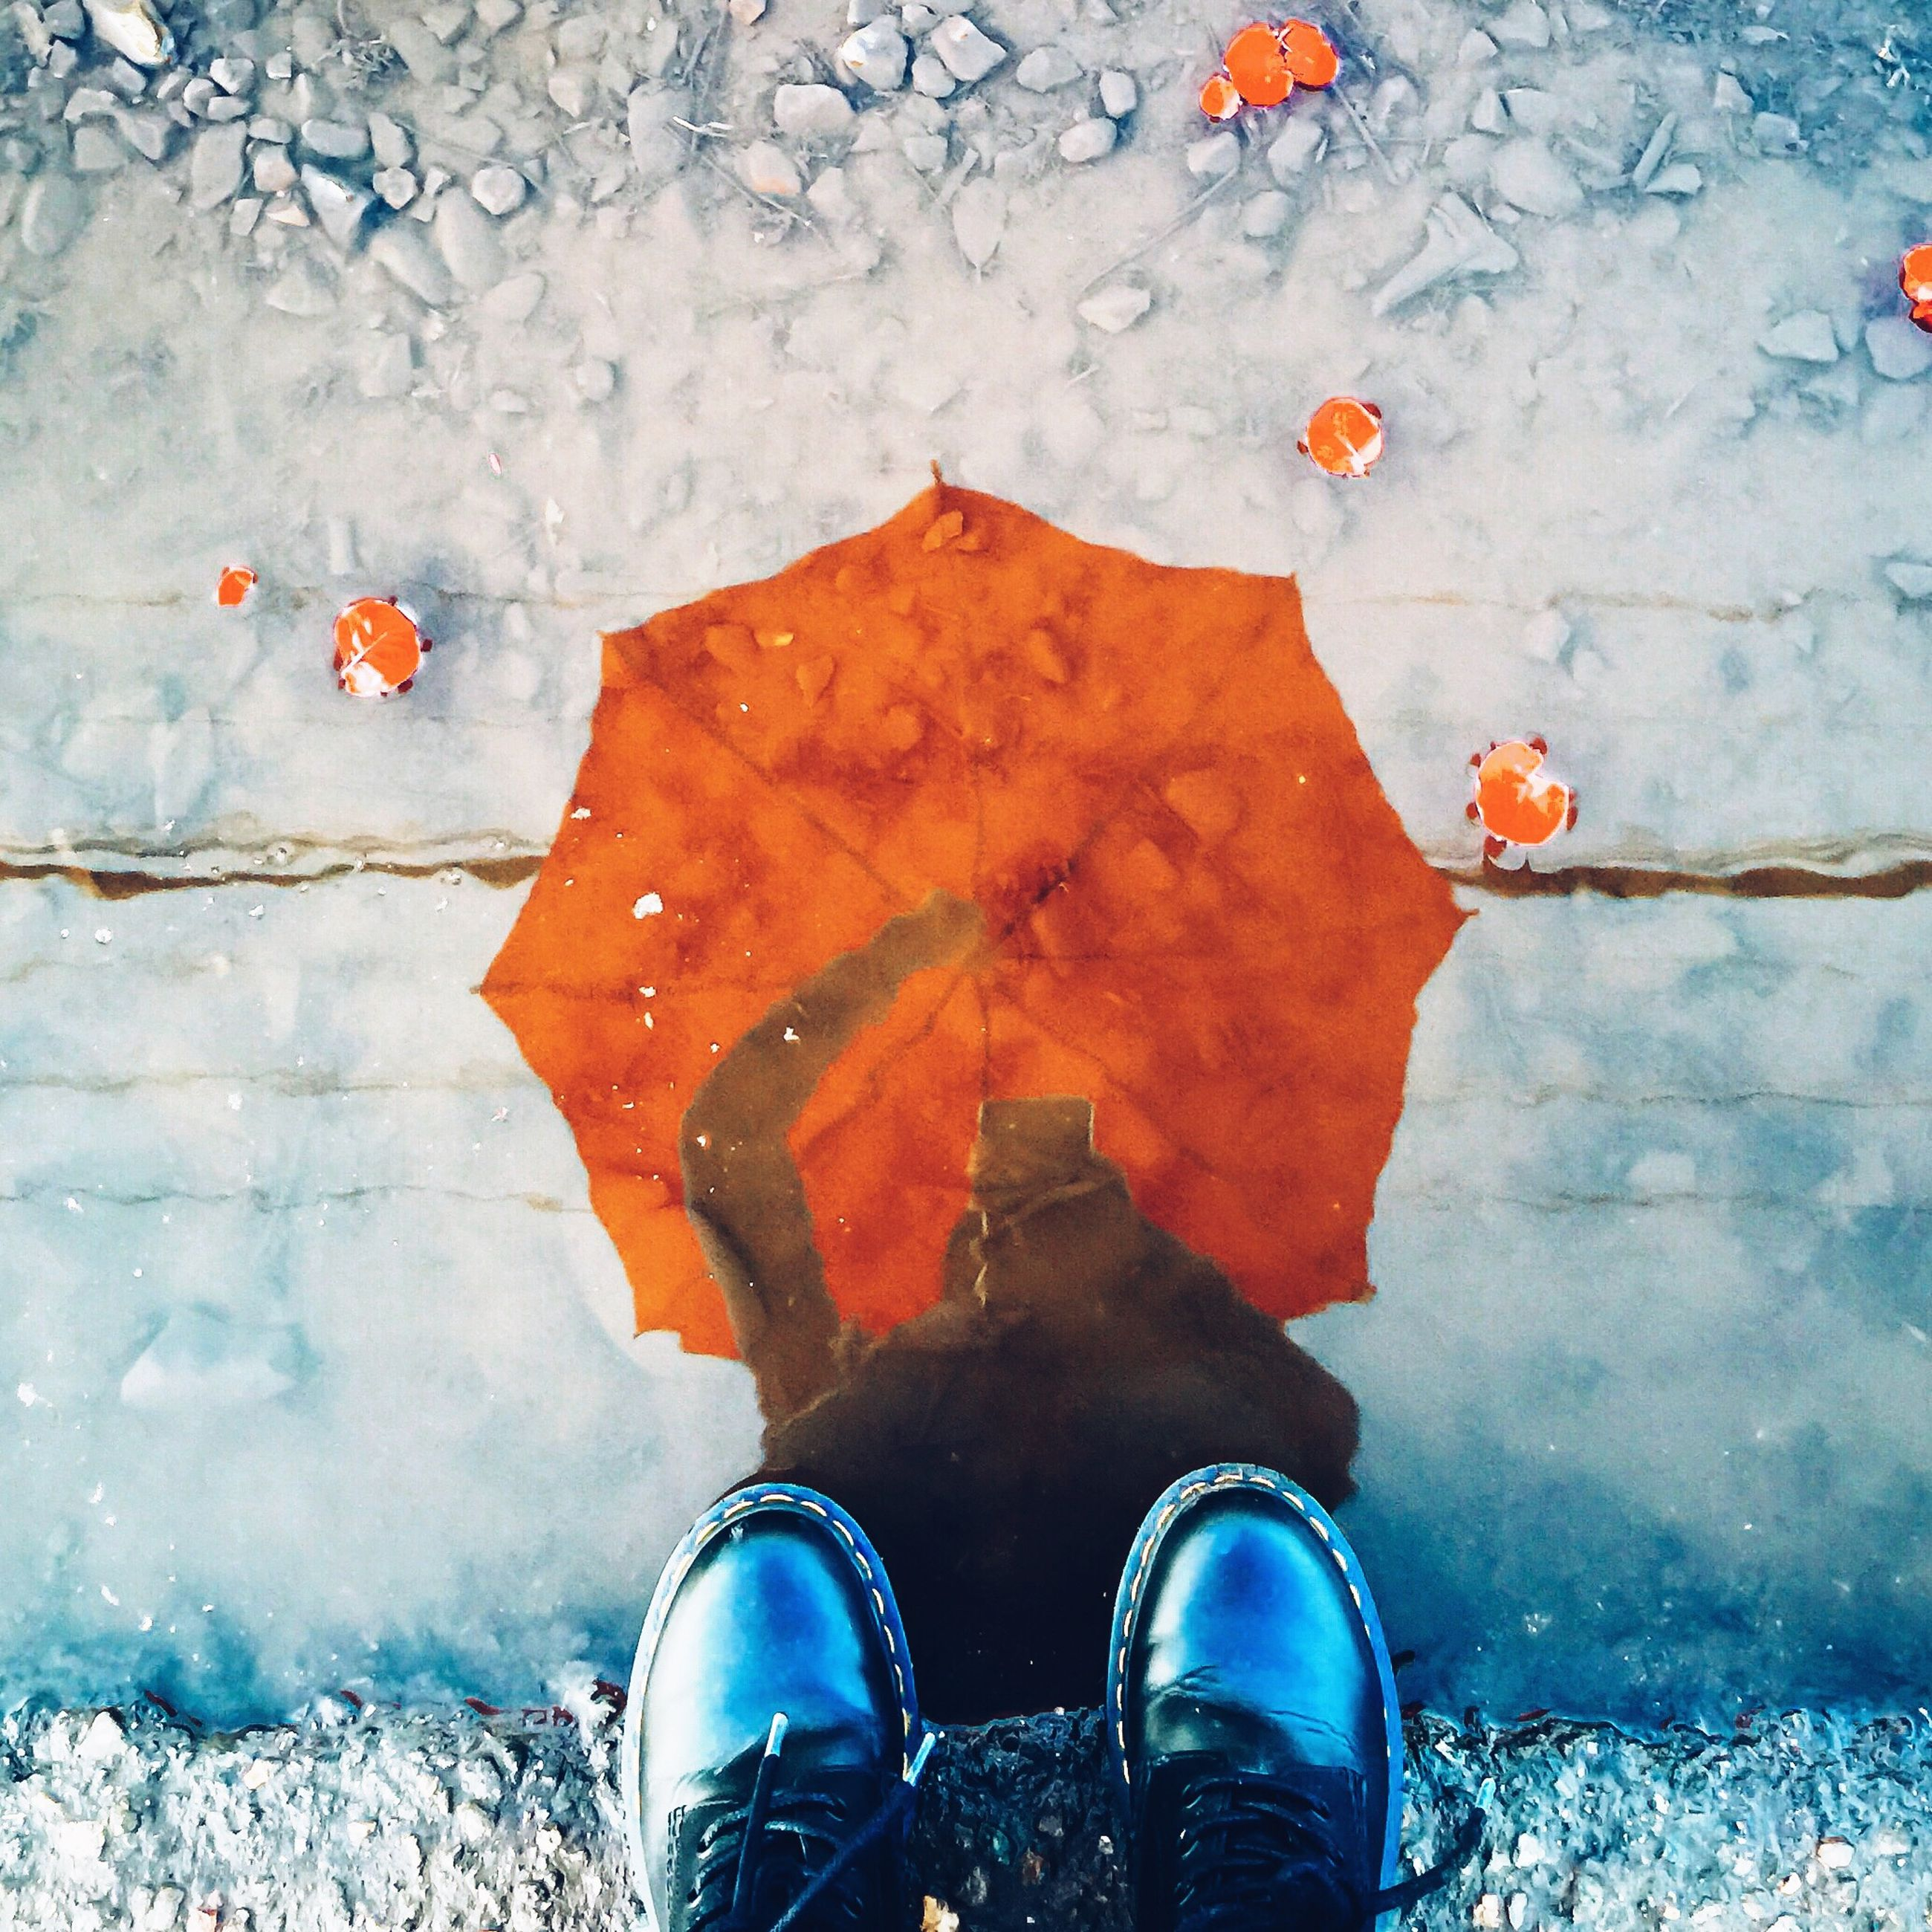 low section, shoe, high angle view, autumn, leaf, season, street, personal perspective, change, person, one person, directly above, footwear, wet, water, puddle, fallen, reflection, dry, leaves